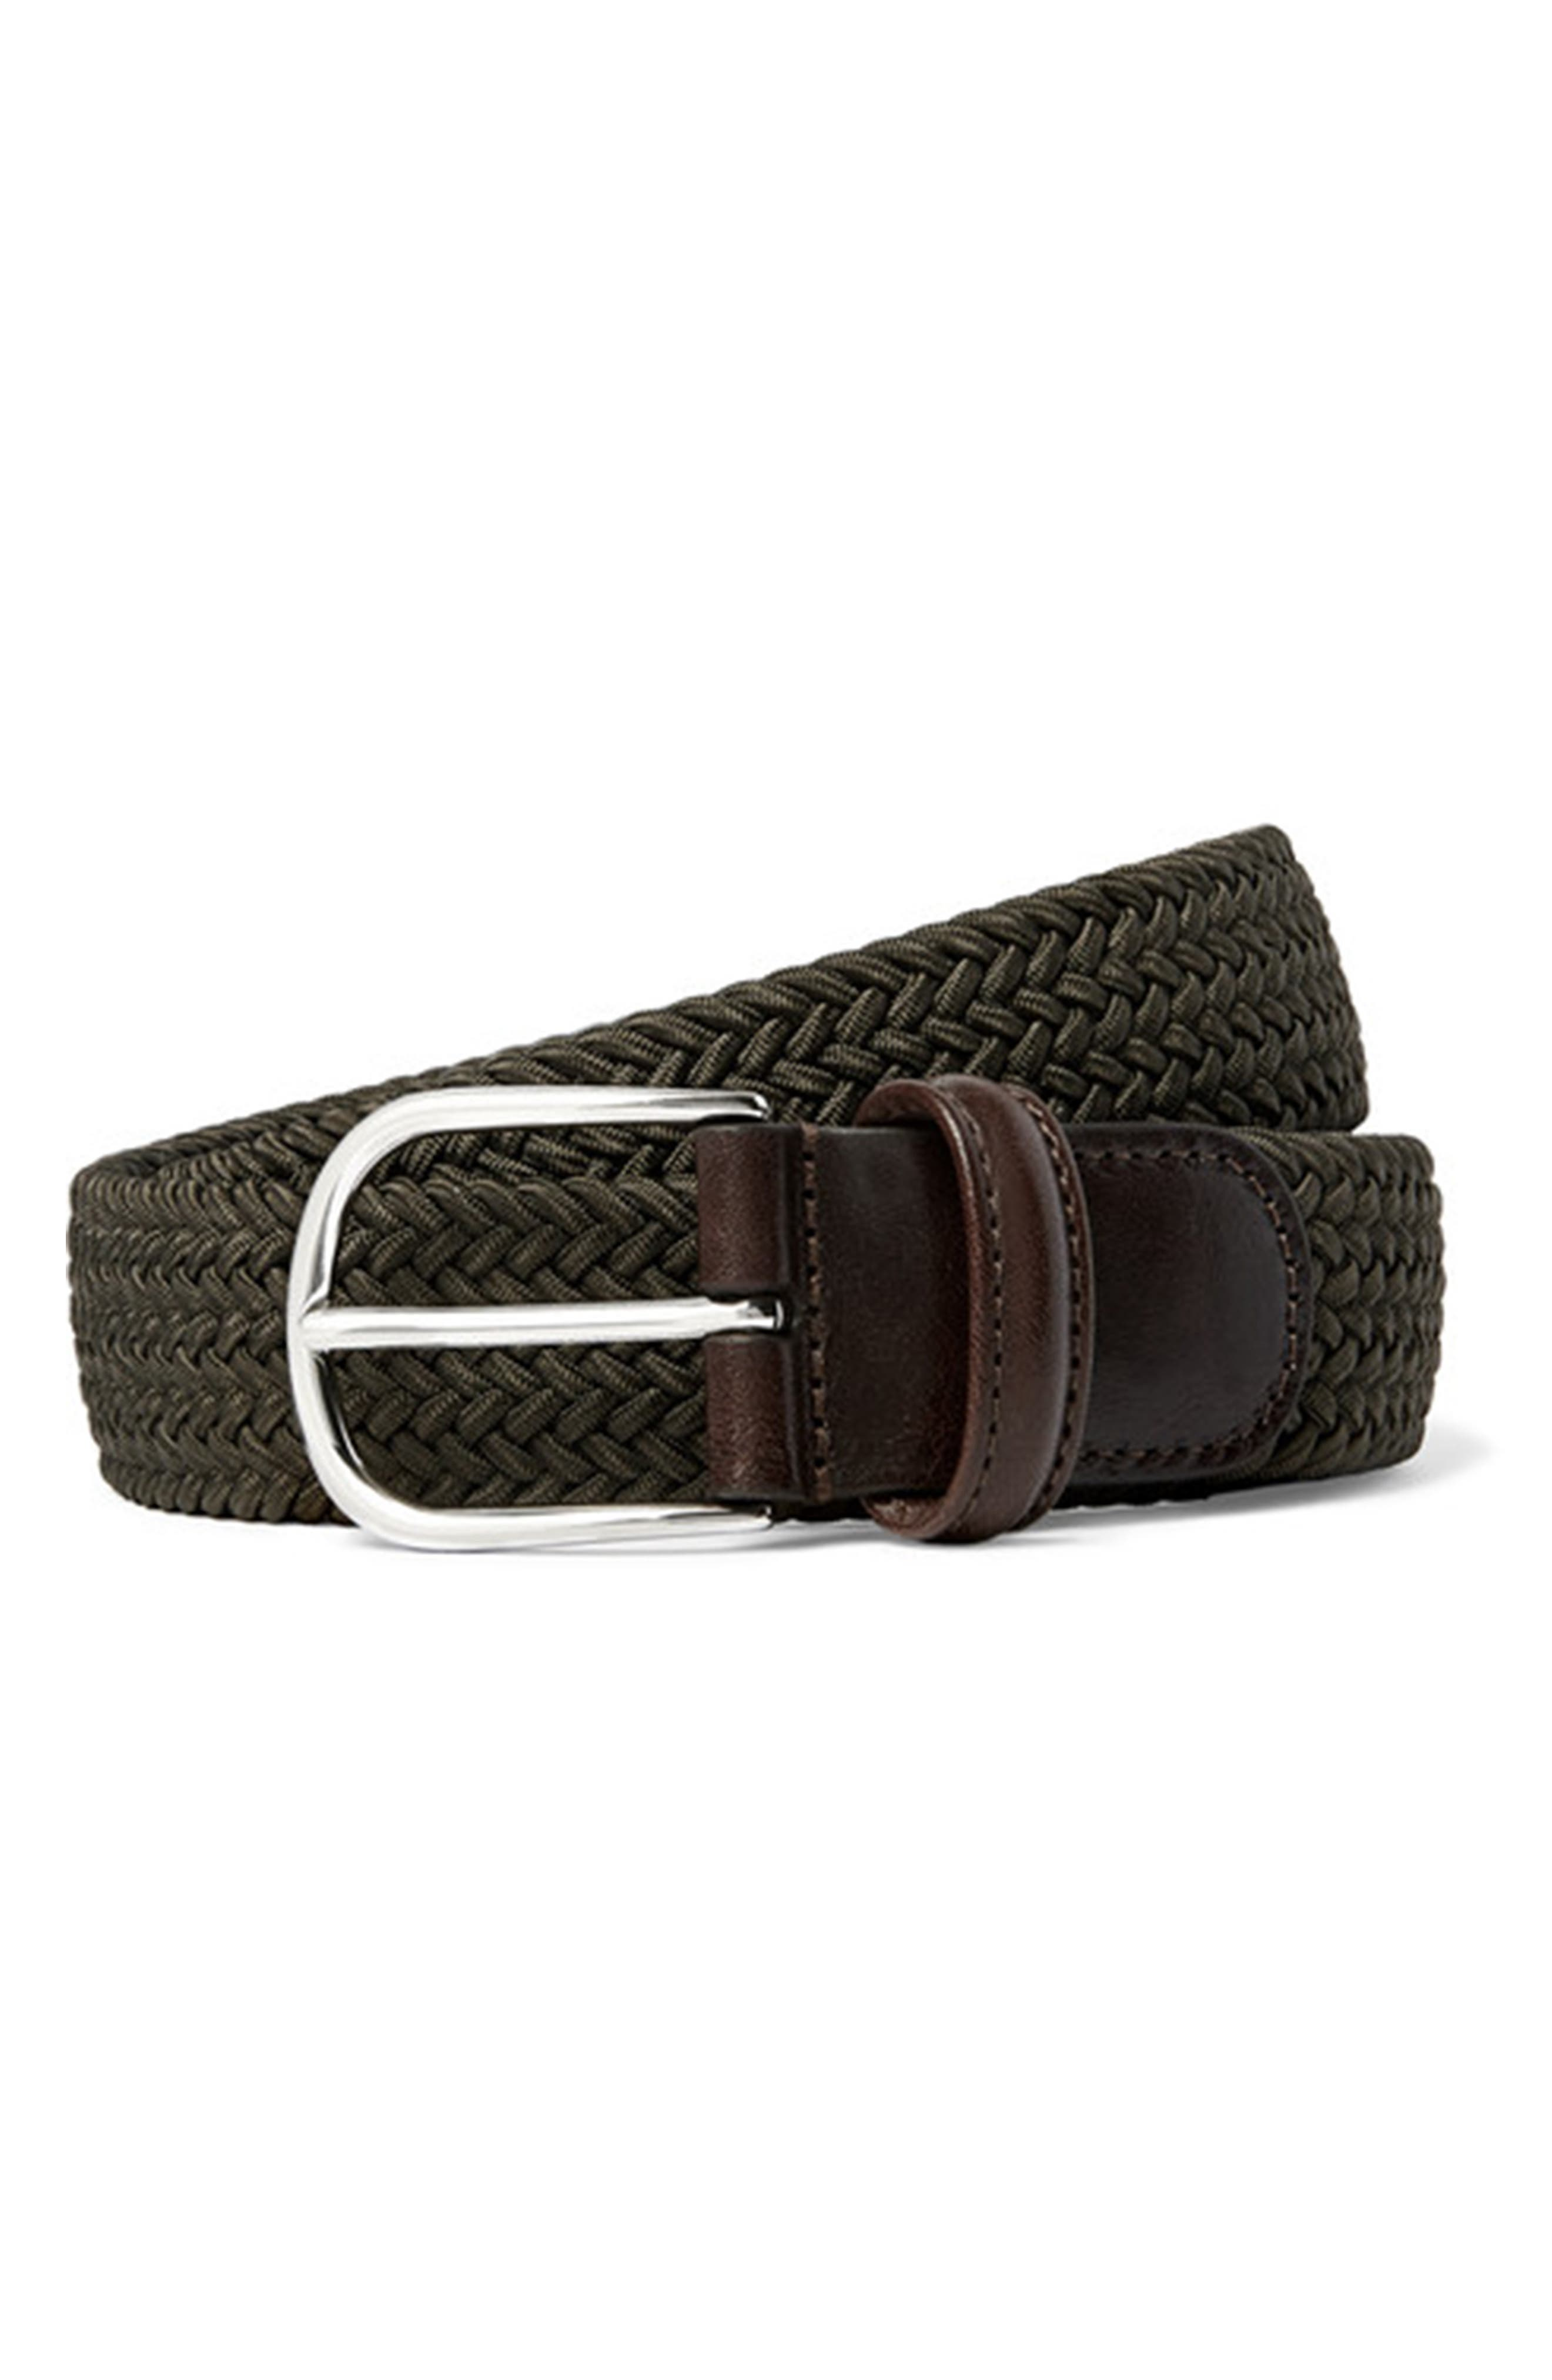 ANDERSONS Basic Stretch Woven Belt in Olive